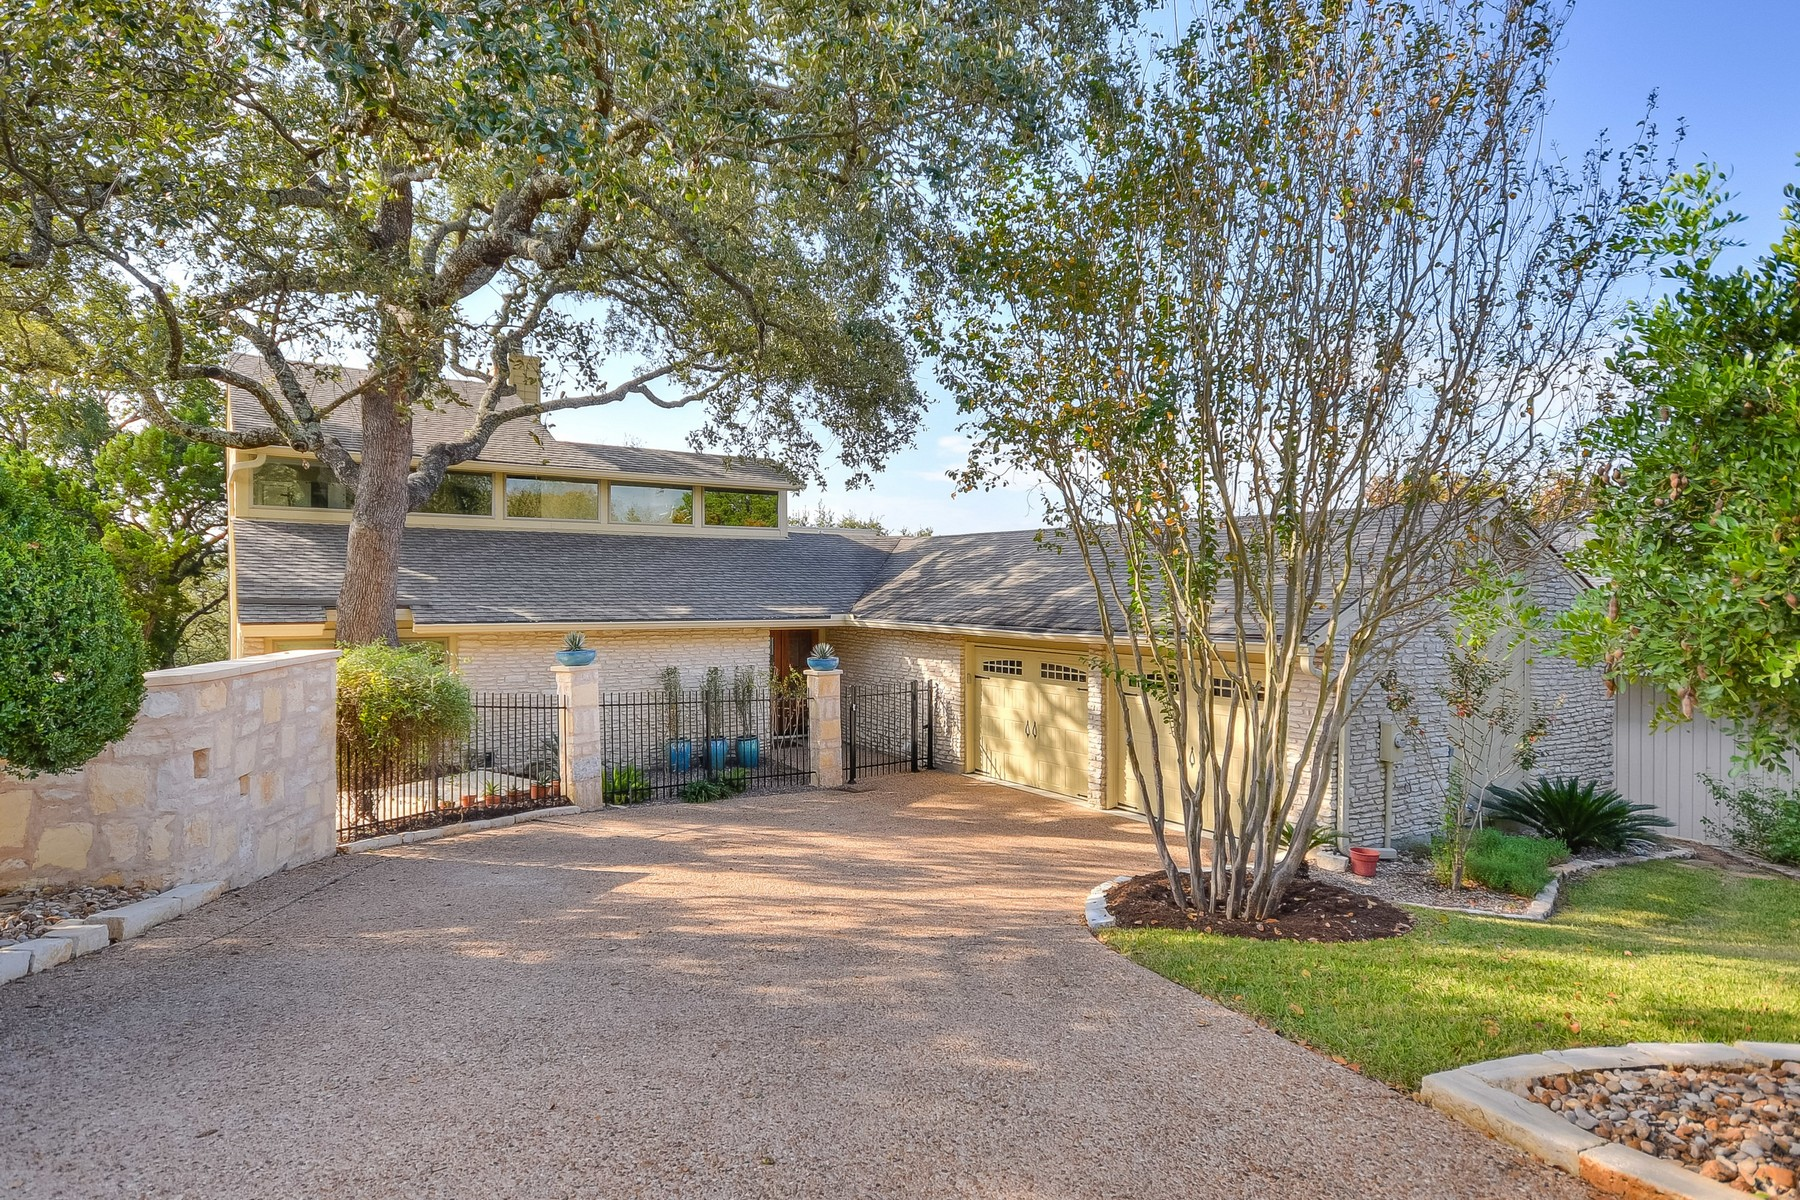 Single Family Home for Sale at Secluded Enclave in the Heart of NW Hills 4421 Stony Meadow Austin, Texas, 78731 United States